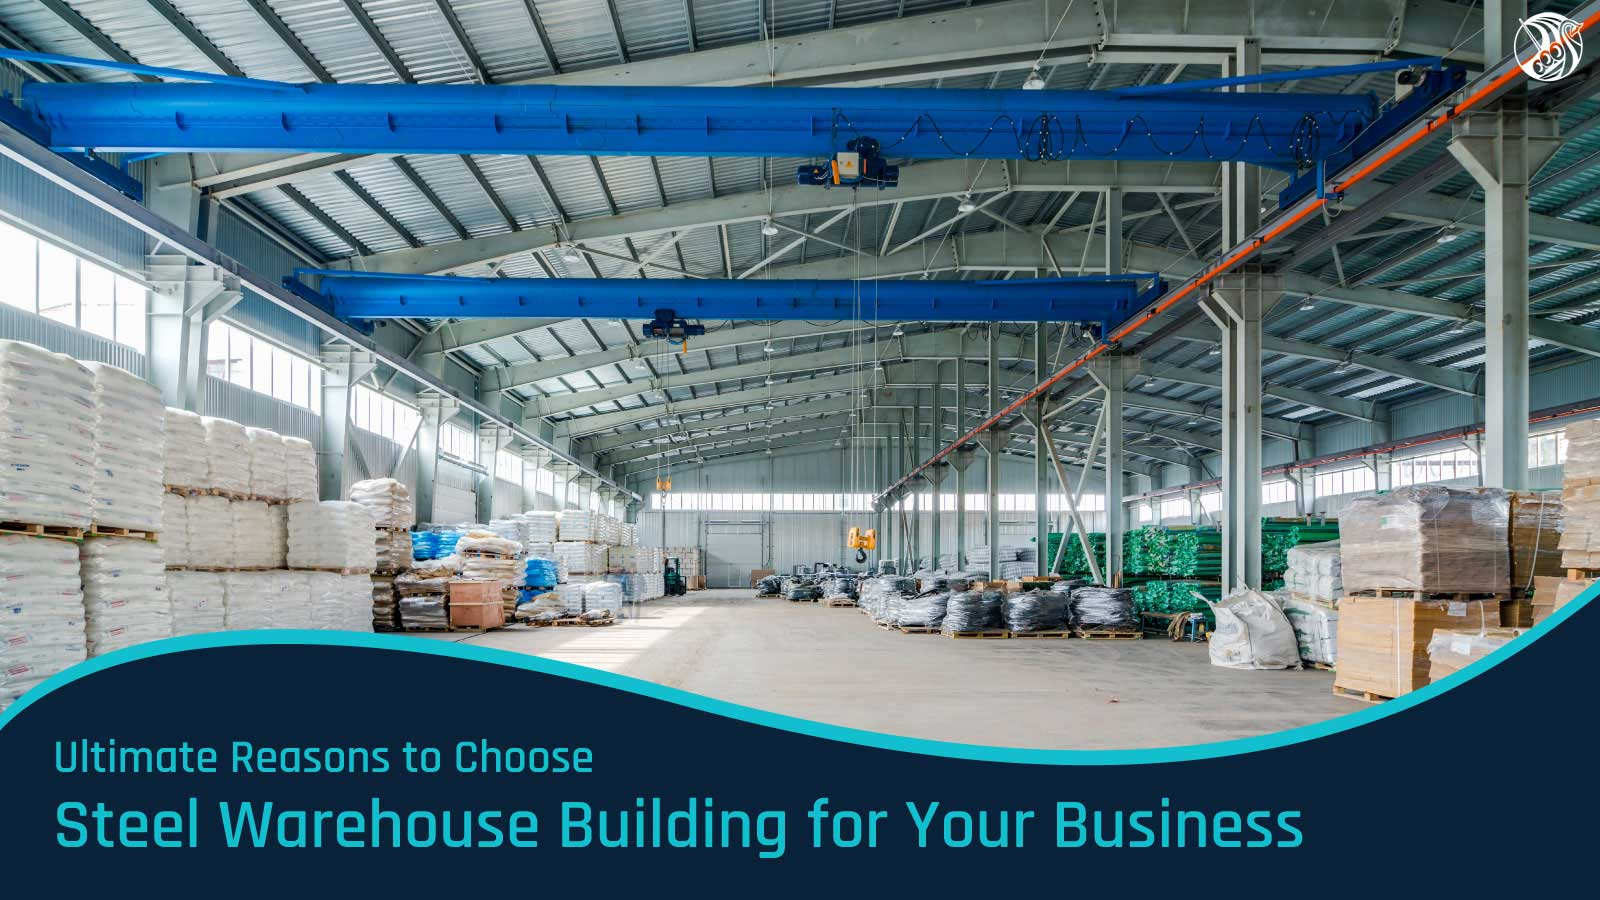 Ultimate Reasons to Choose Steel Warehouse Building for Your Business